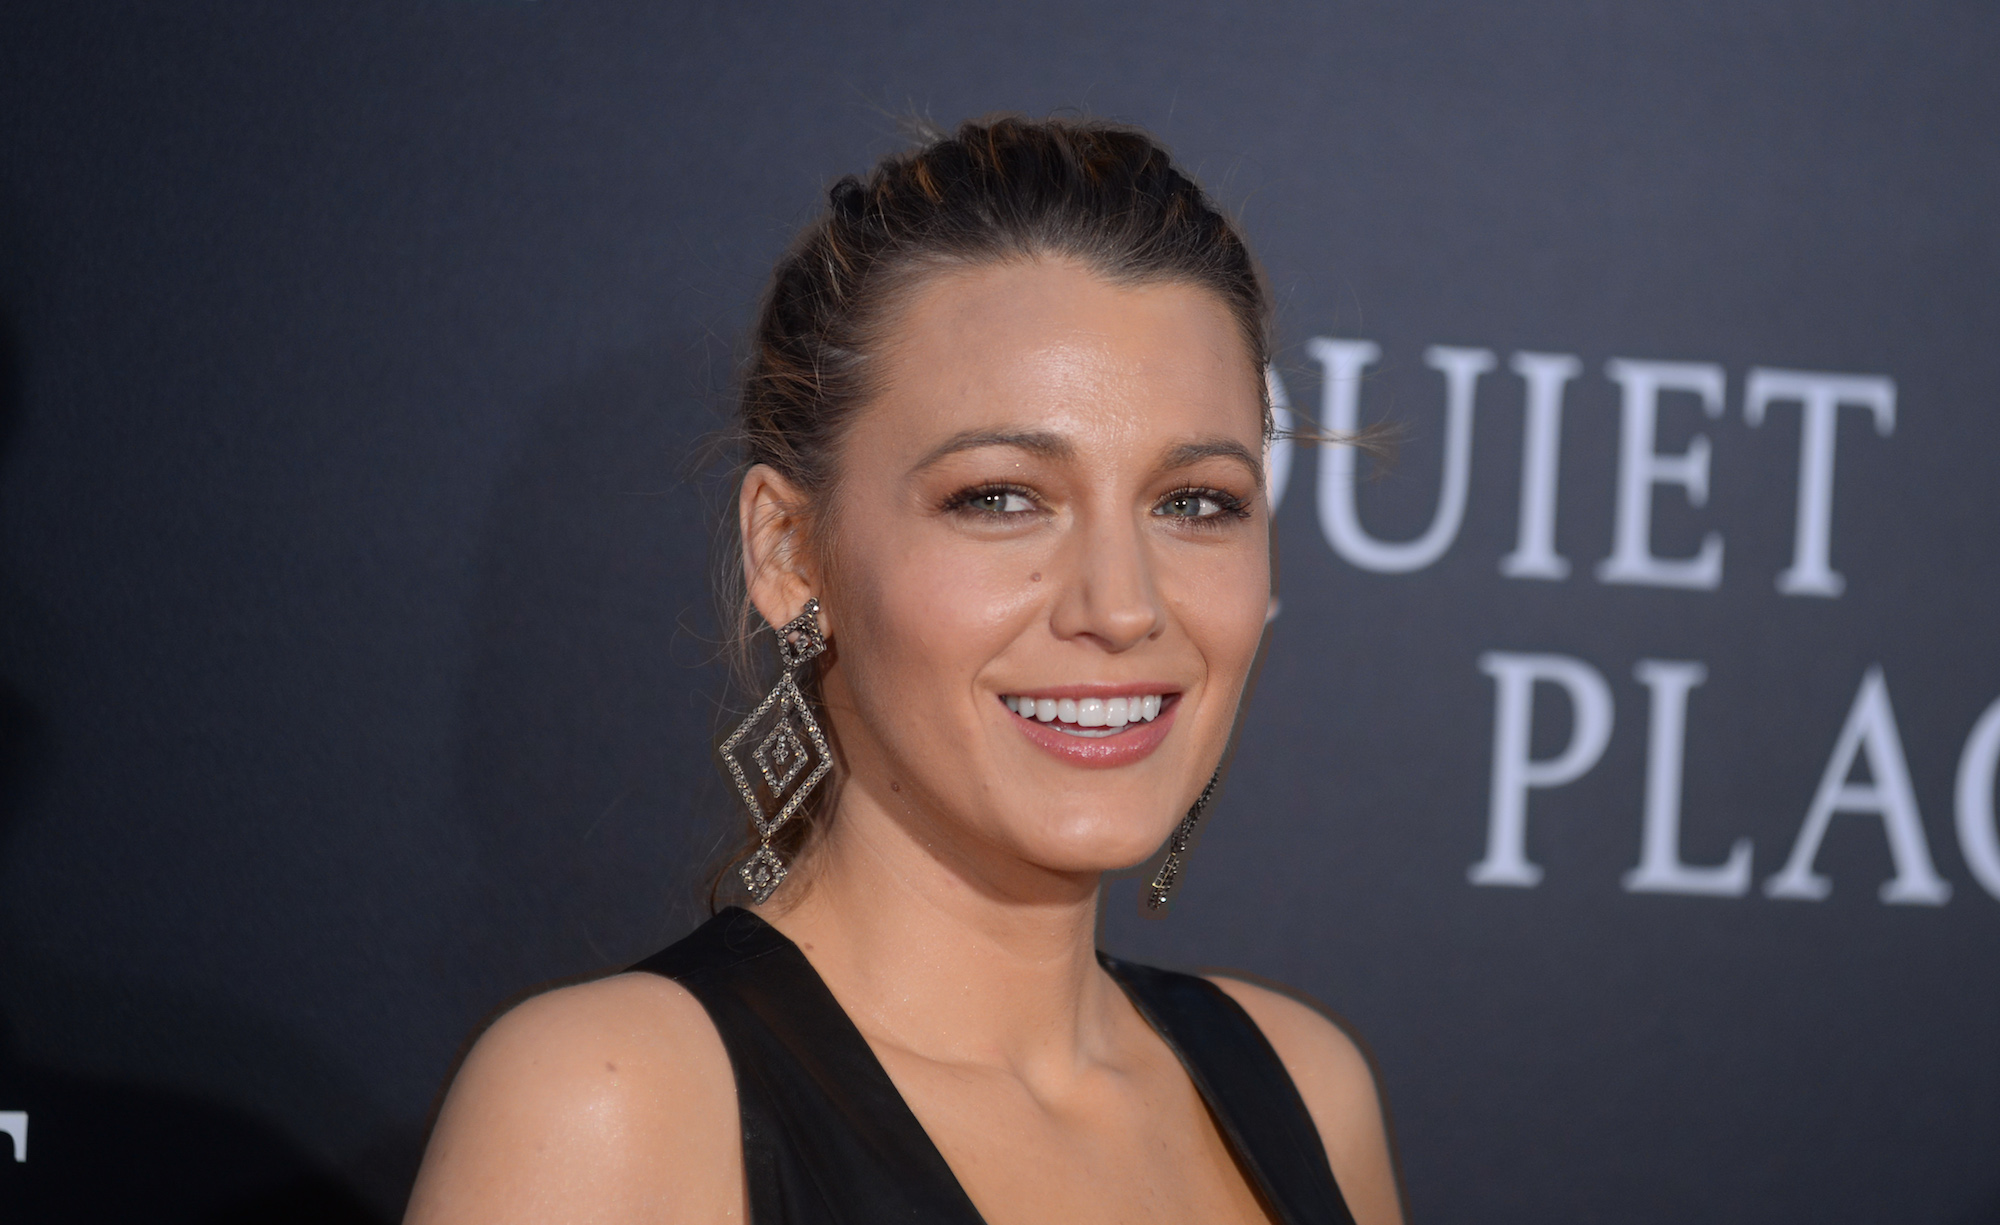 Blake Lively Has Sudde...